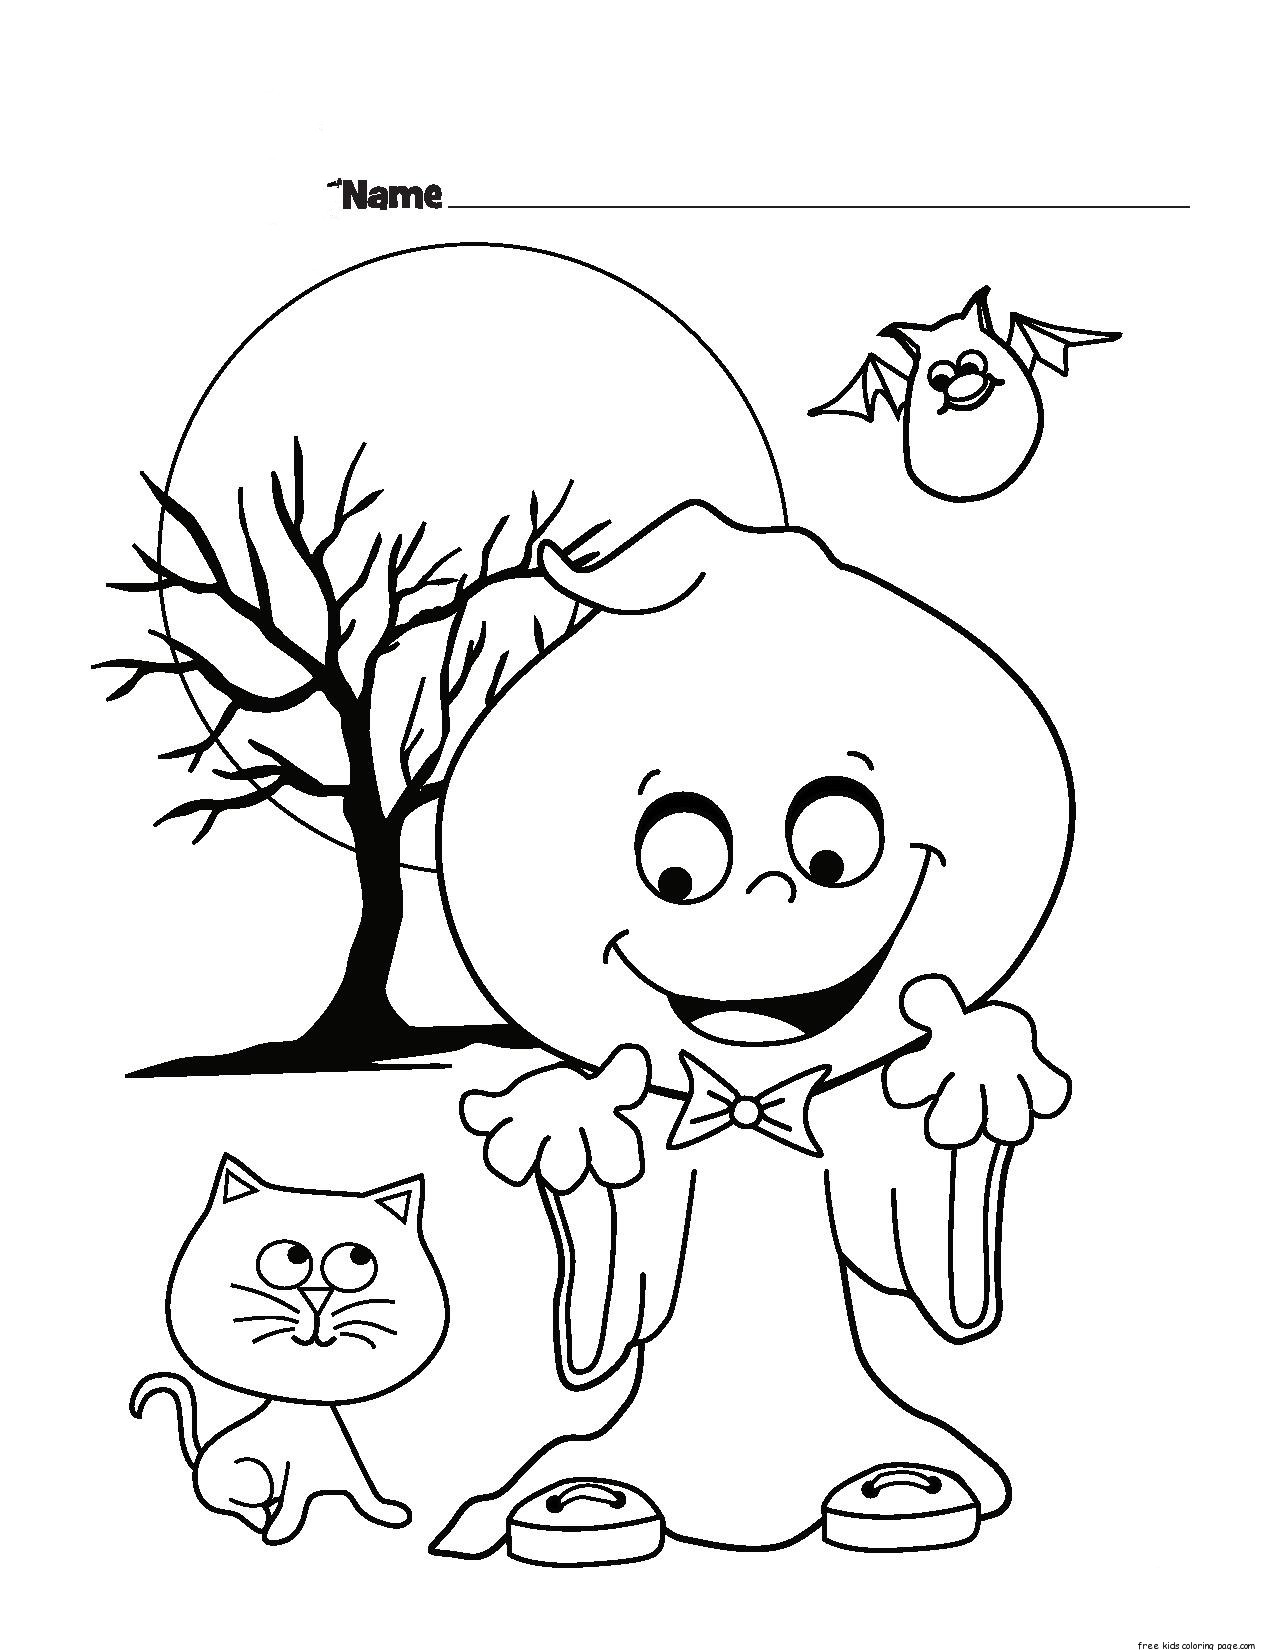 free printable kid coloring pages | halloween ghost printable coloring pages for kidsFree ...